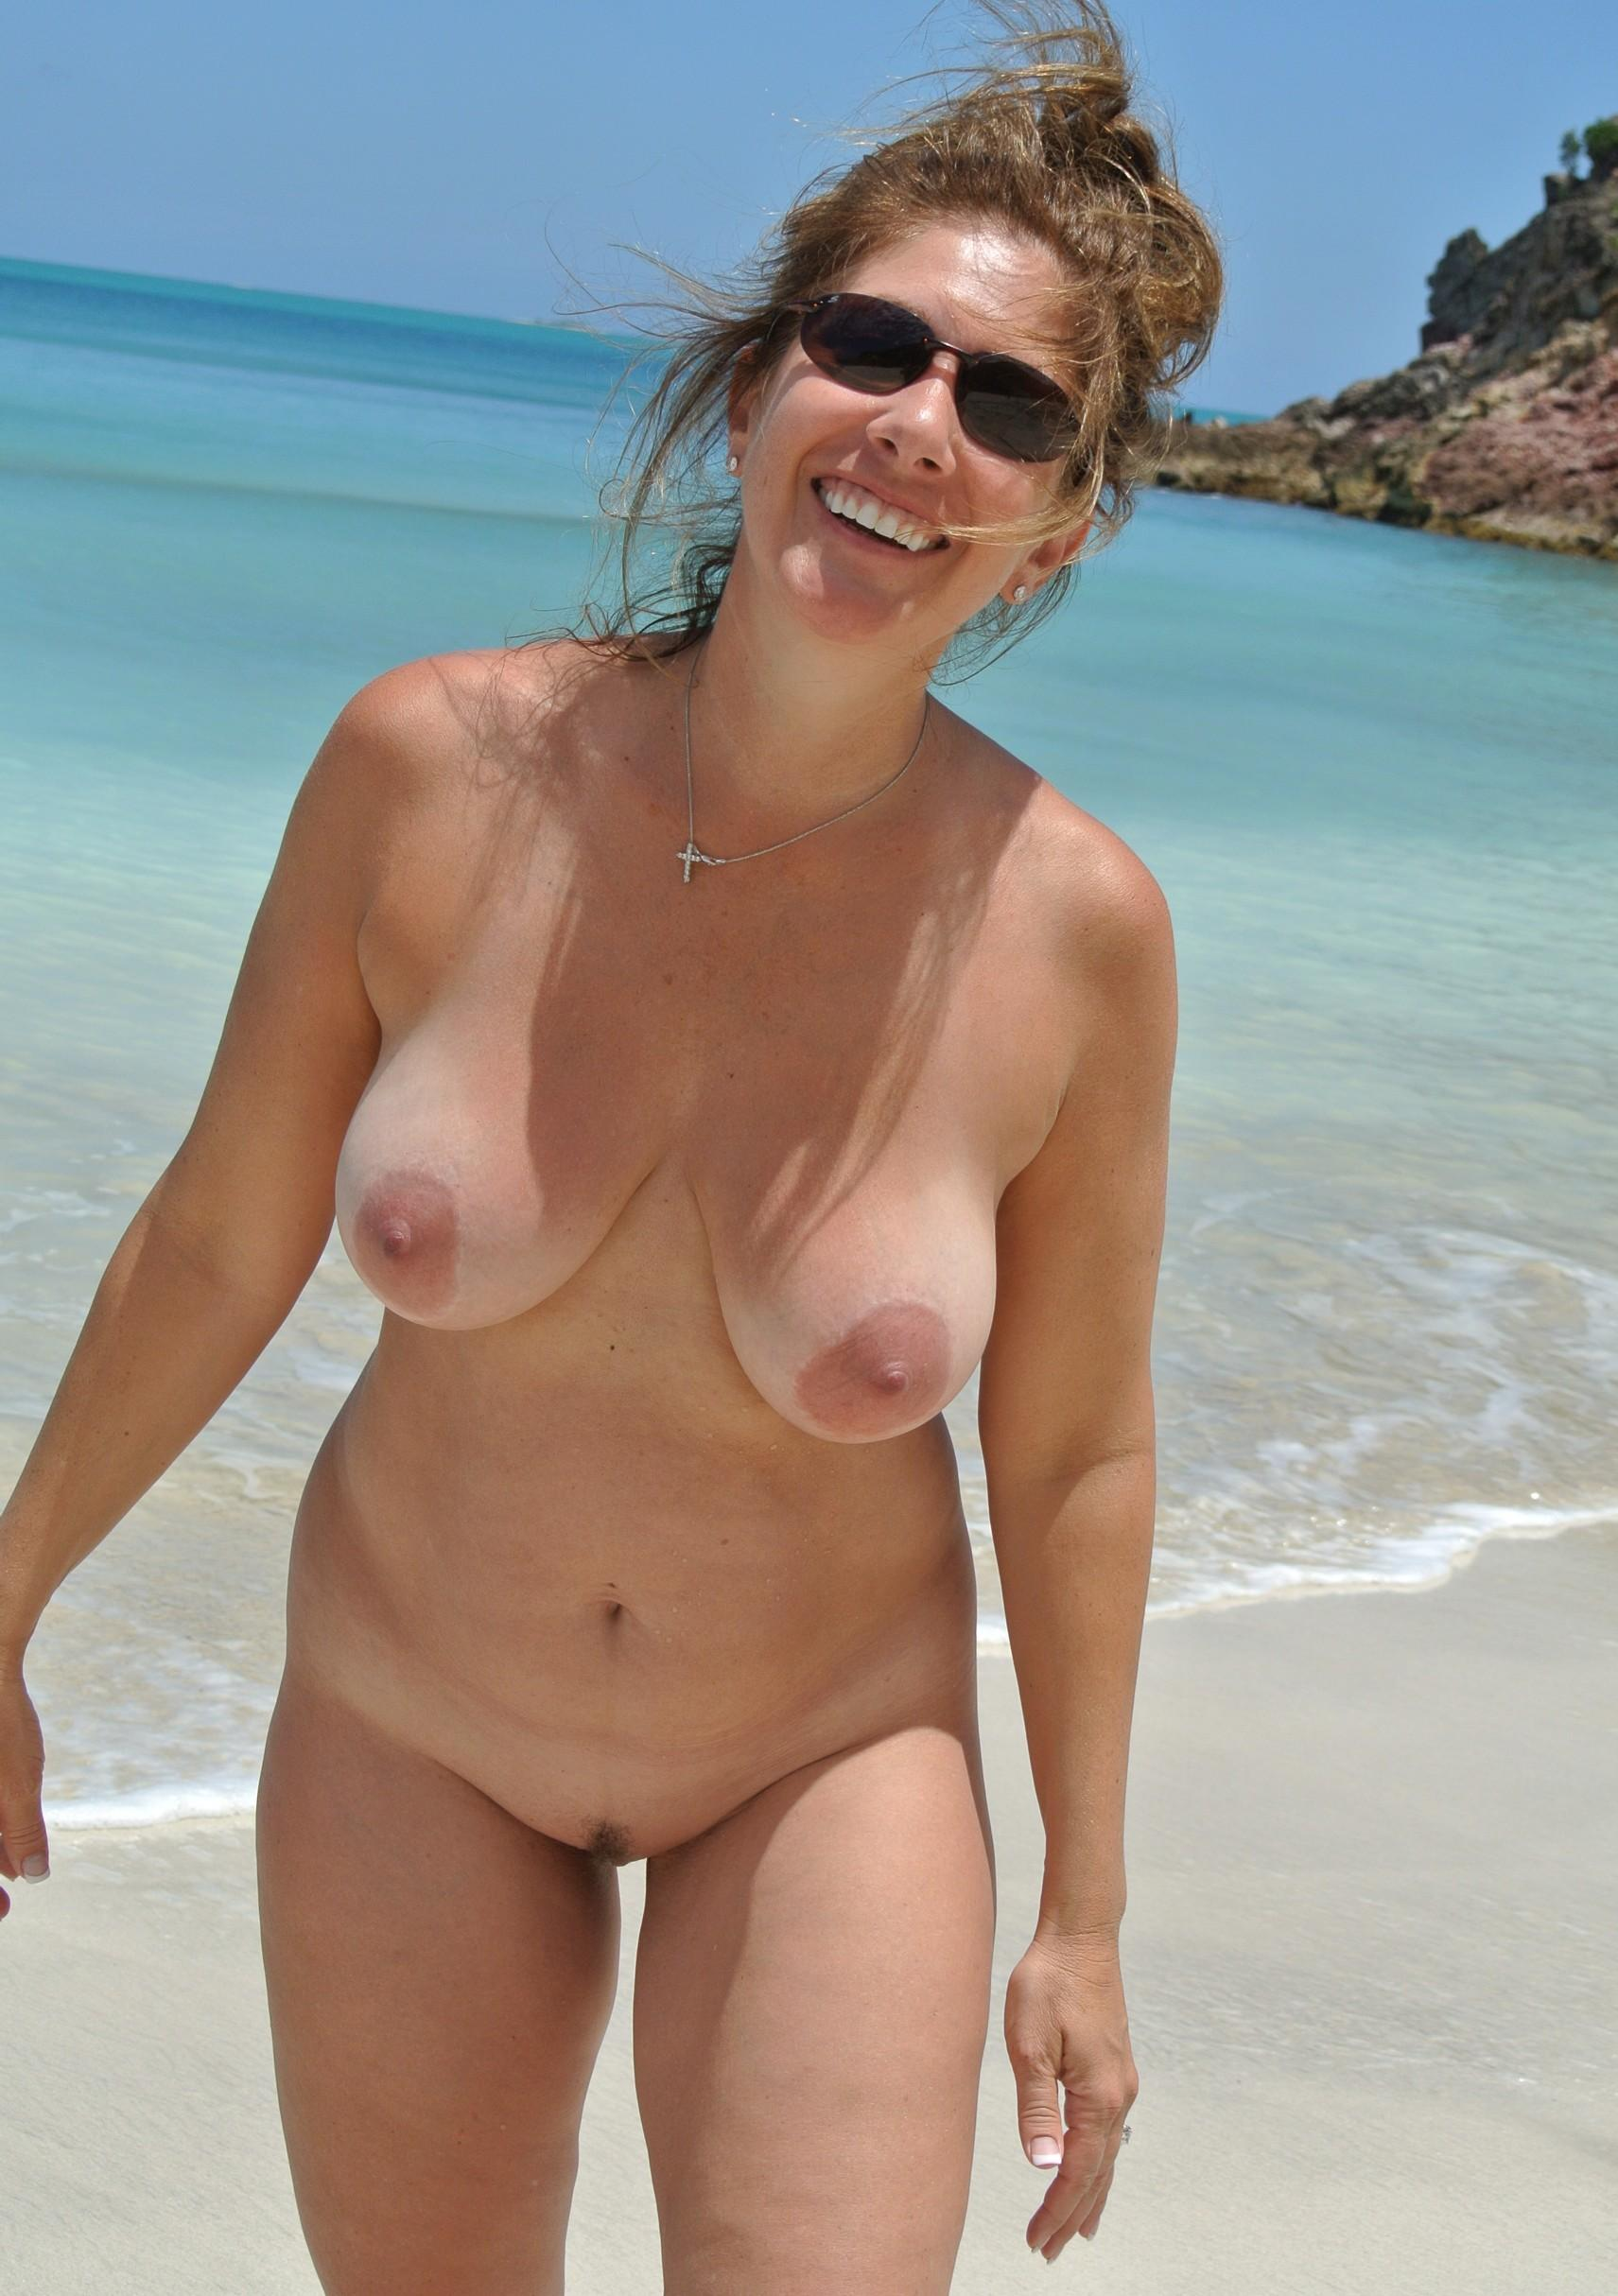 Nude busty MILF tanning her naked hot body on the beach. Hot wife letting her massive big tits hang loose at the beach